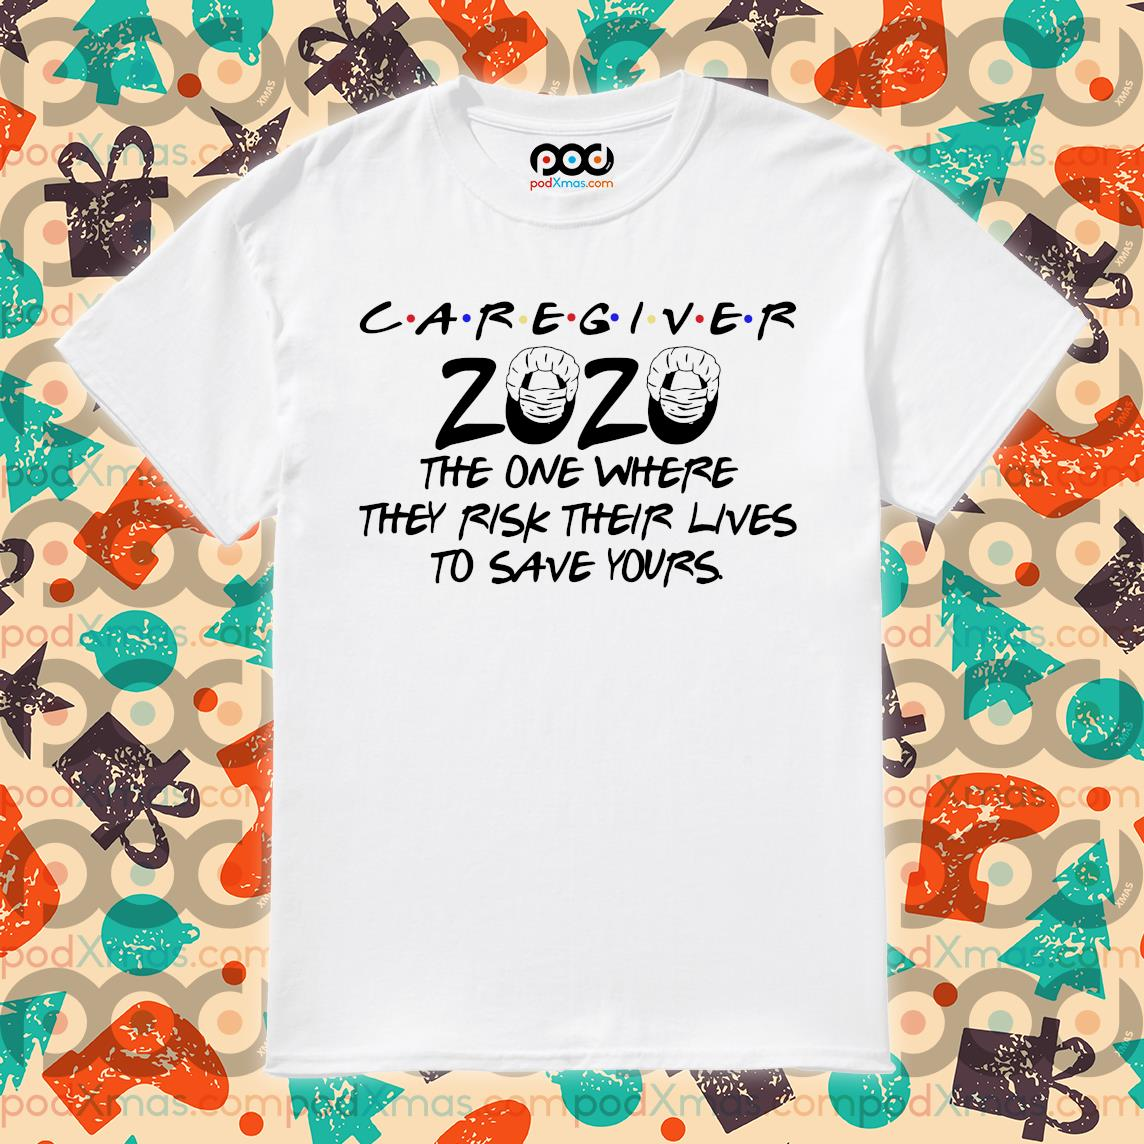 Caregiver 2020 the one where they risk their lives to save yours shirt